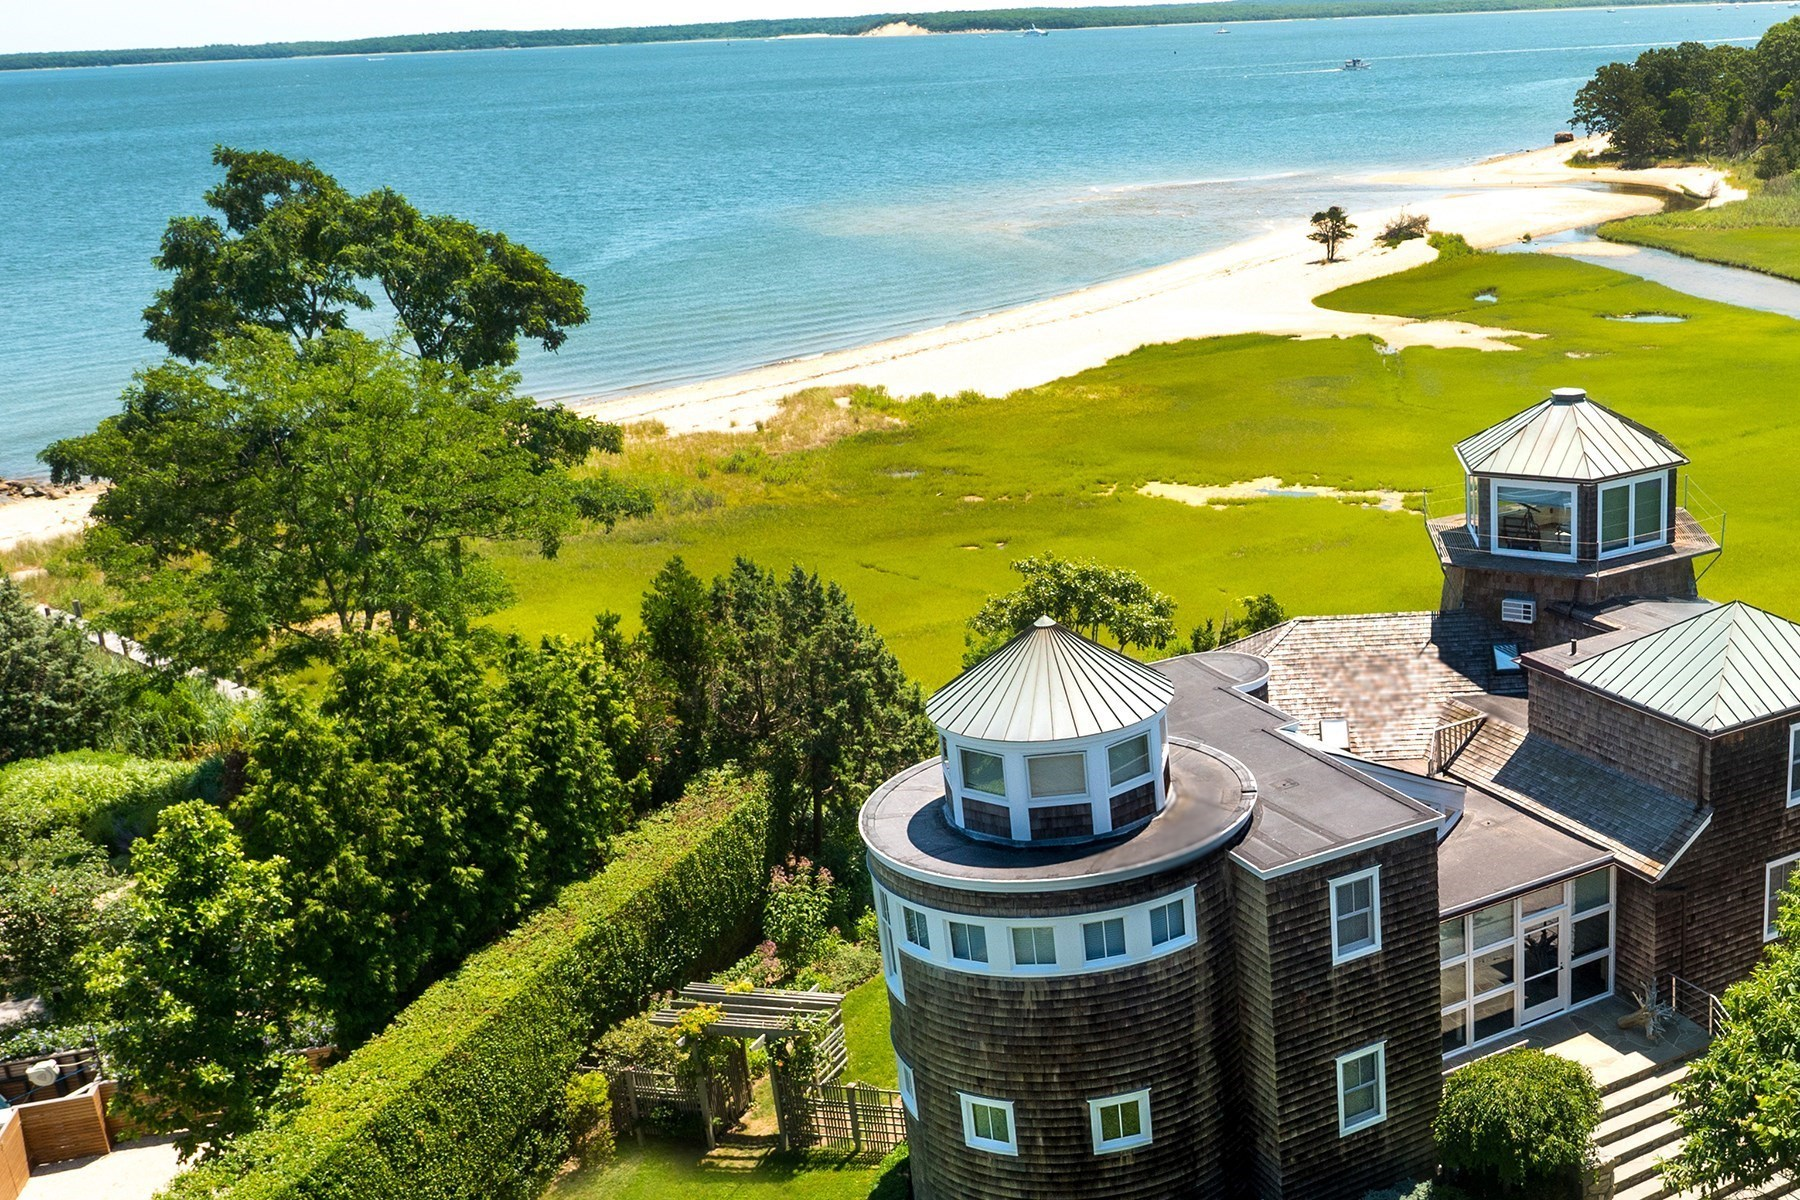 Single Family Home for Sale at Lookout on Soundview 59 Mashomuck Drive Sag Harbor, New York 11963 United States